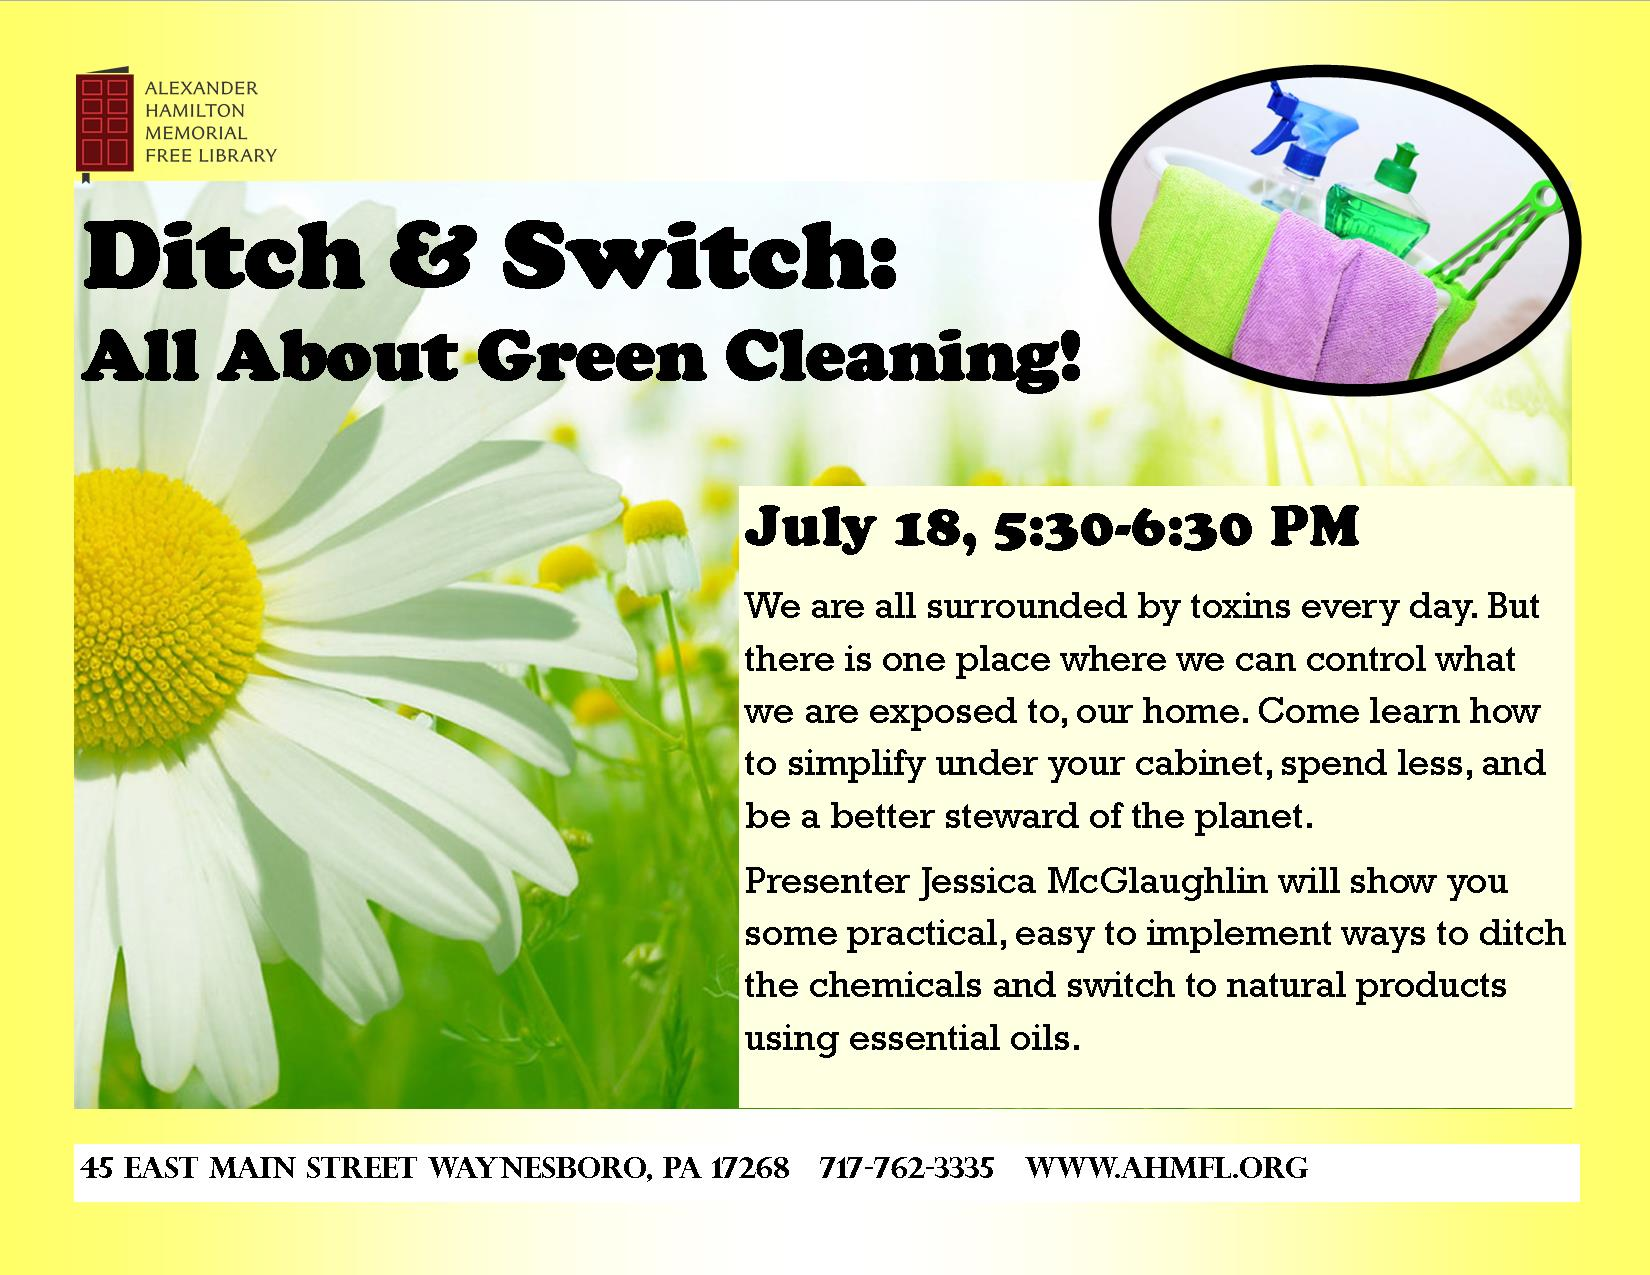 Ditch & Switch Green Cleaning flyer.jpg